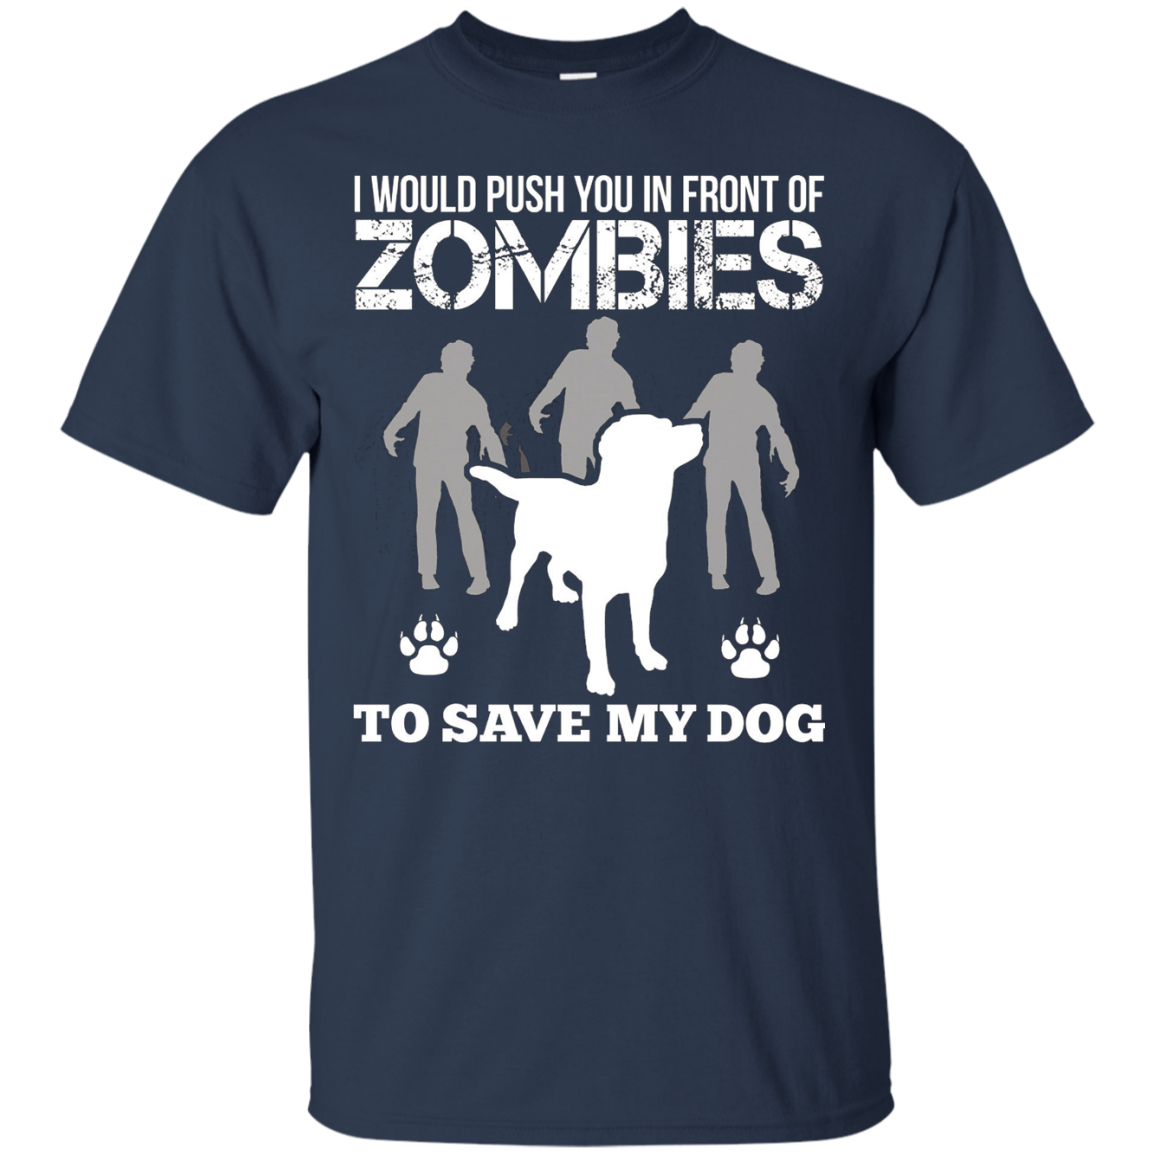 I Would Push You in Front of Zombies to Save My Dog Funny